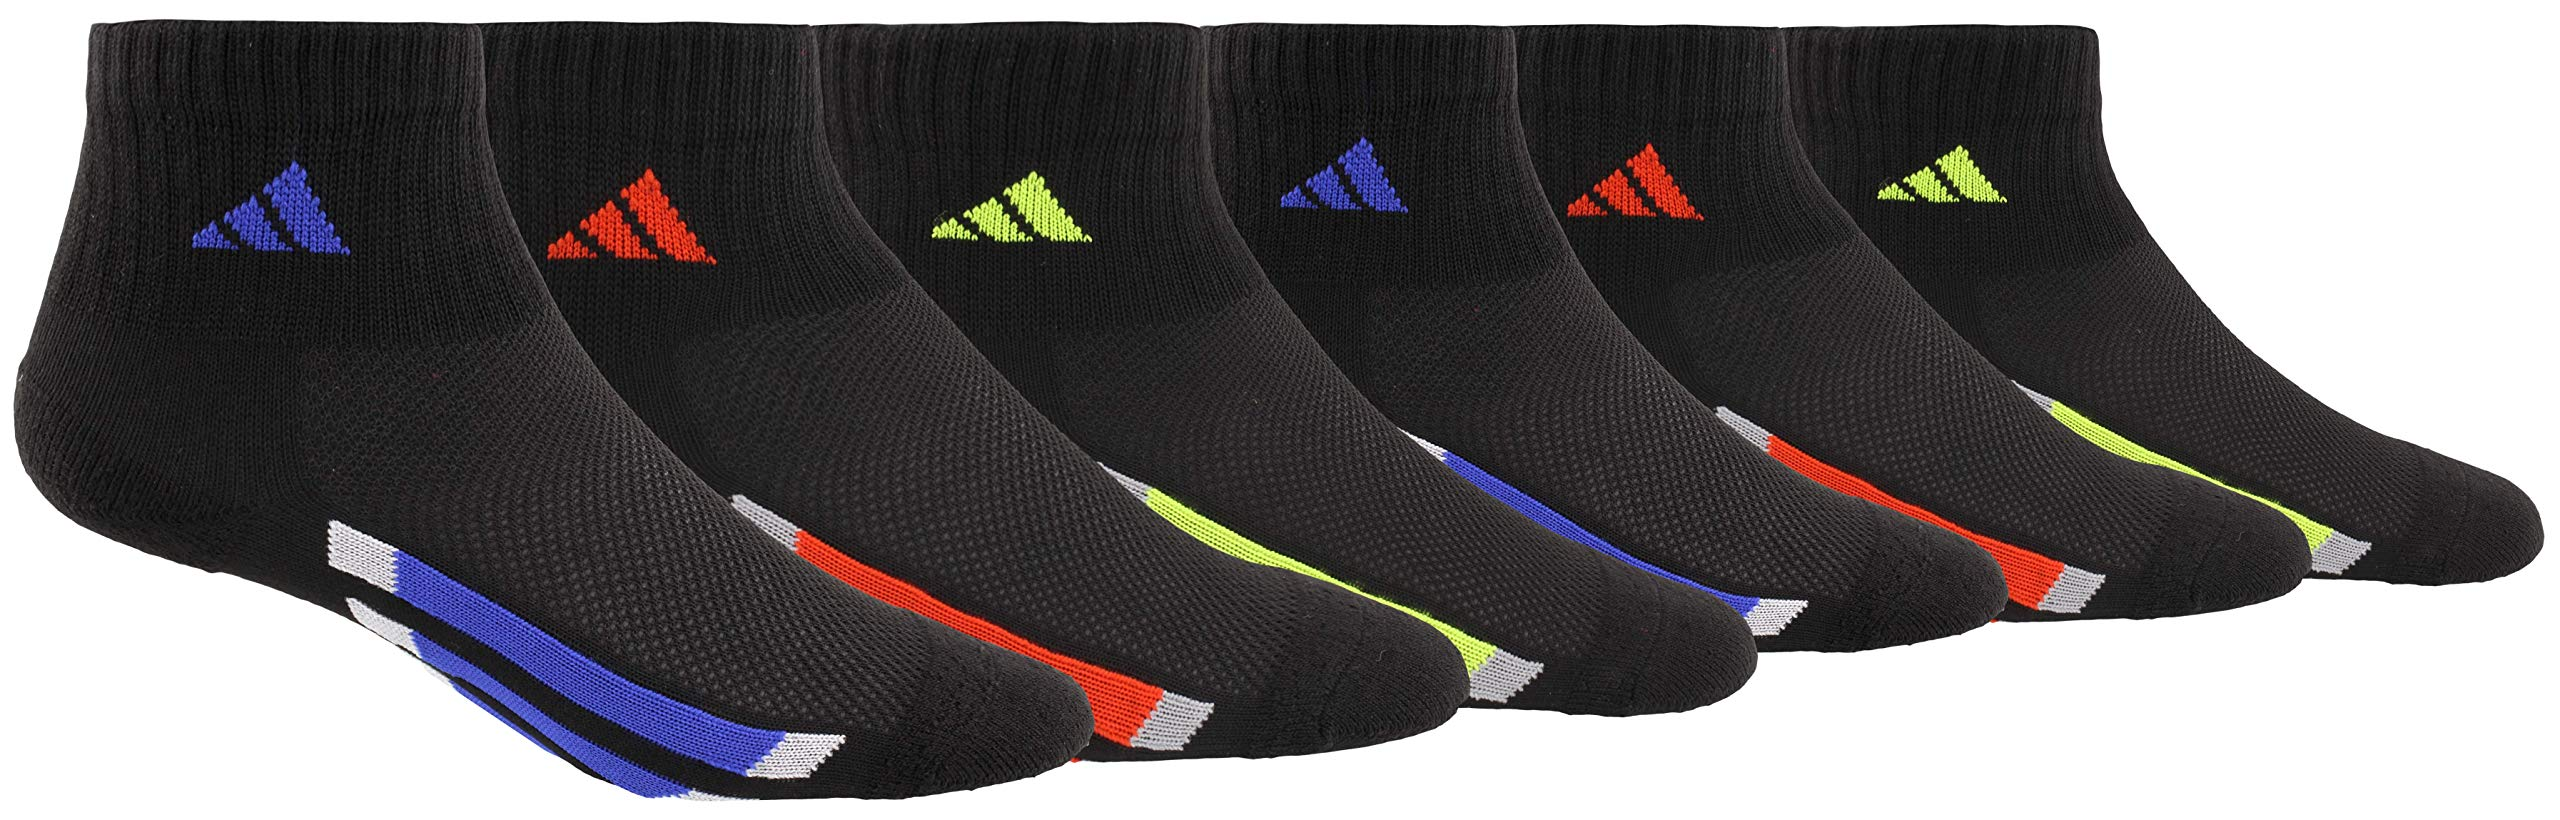 adidas Youth Kids-Boy's/Girl's Cushioned Quarter Socks (6-Pair), Black/Active Blue/Light Onix Black/Active Red/Ligh, Large, (Shoe Size 3Y-9) by adidas